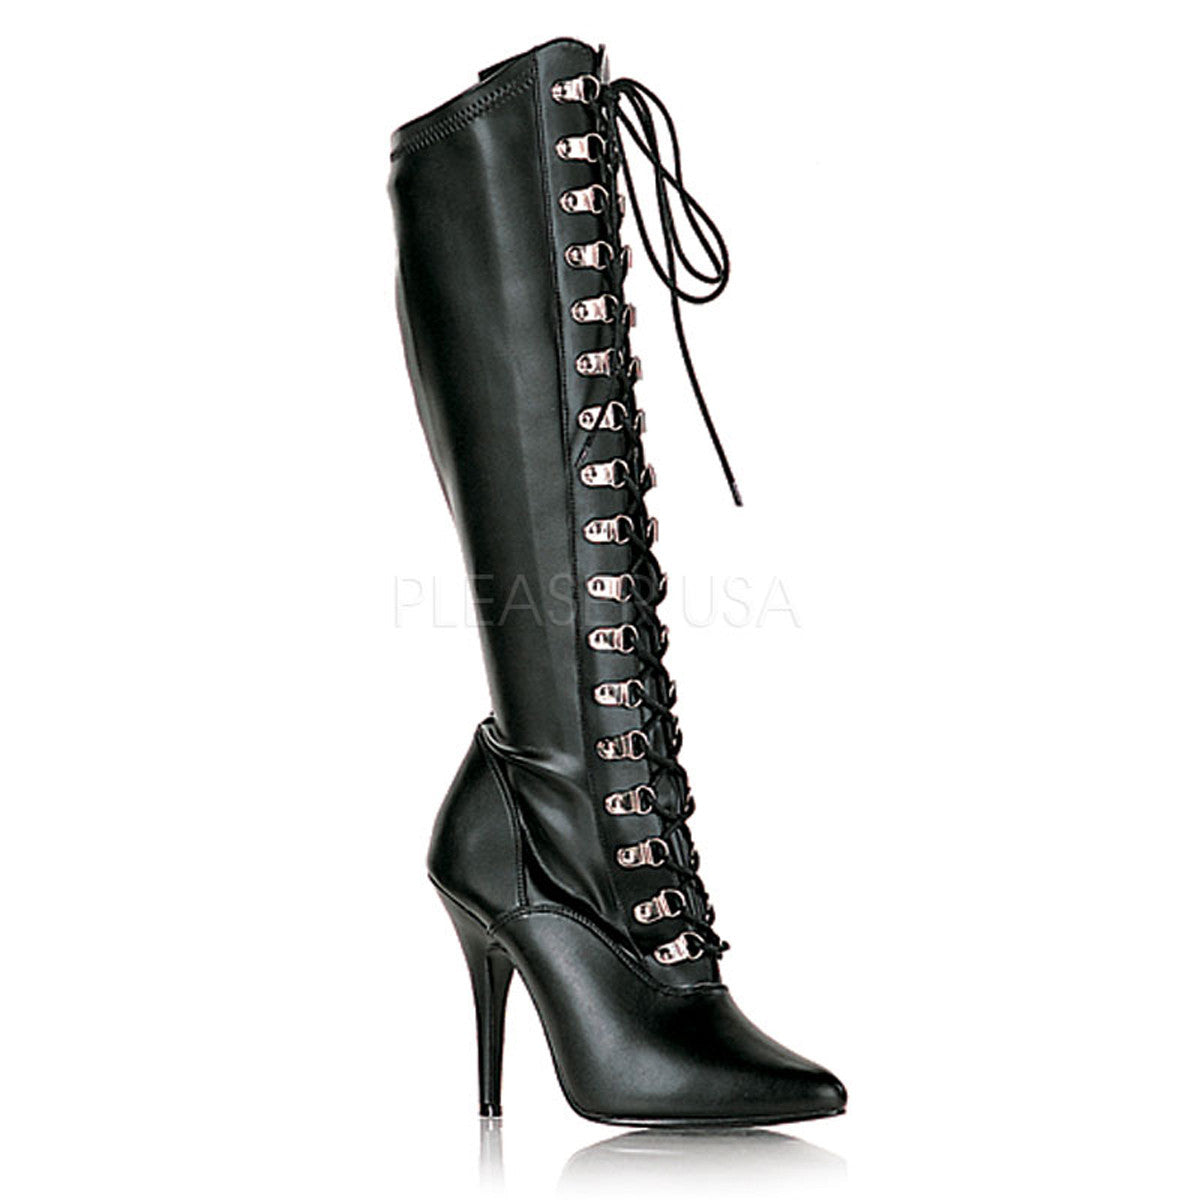 PLEASER SEDUCE-2024 Black Stretch Pu Knee High Boots - Shoecup.com